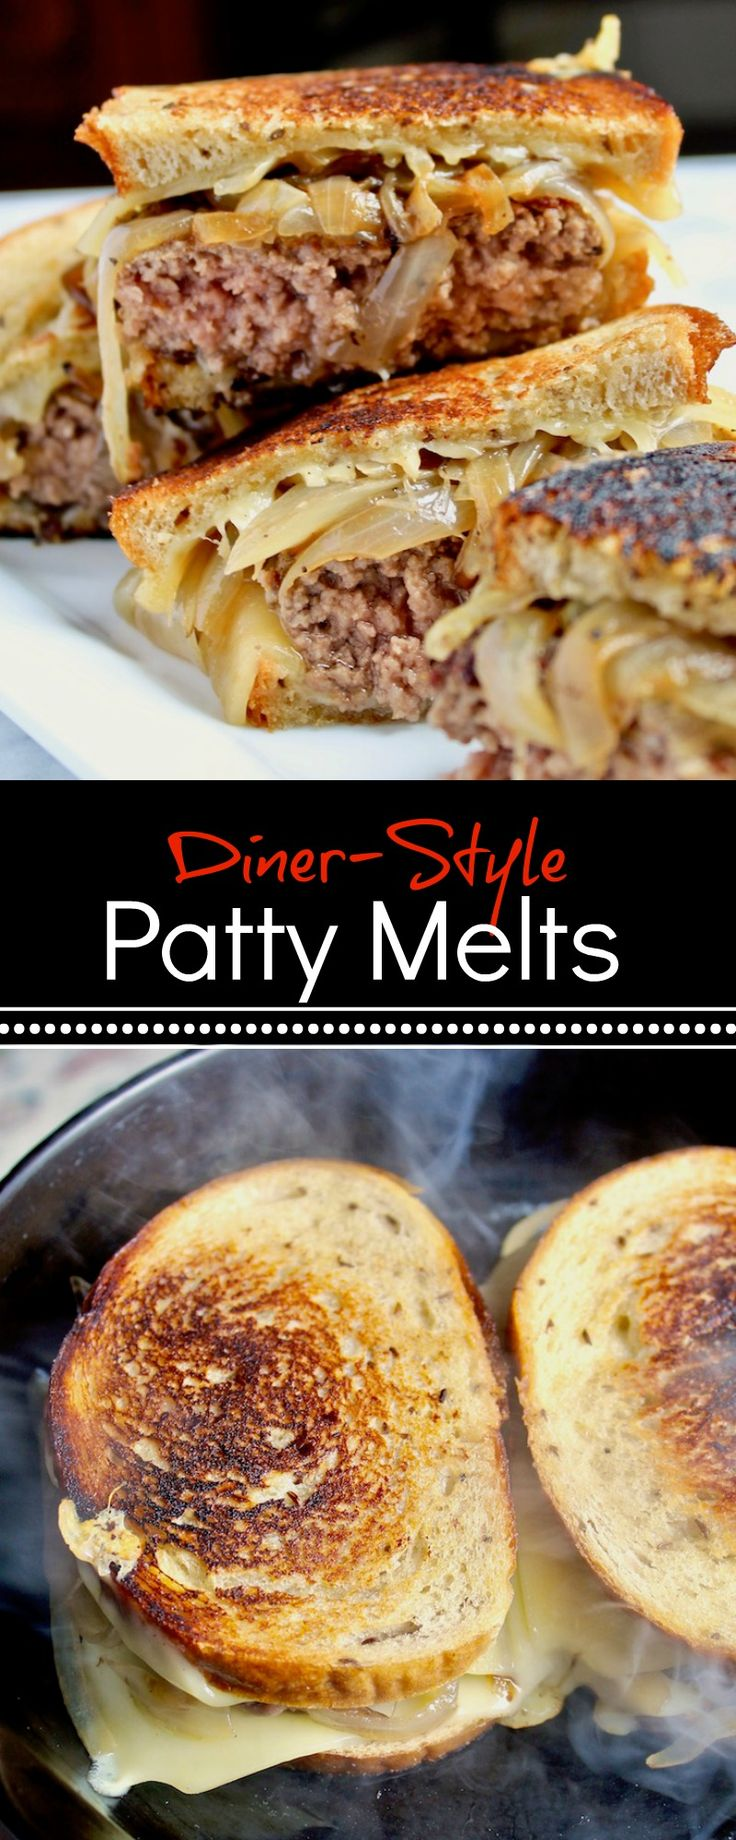 Classic diner-style patty melts at home.  Beef patties grilled on rye bread with Swiss cheese and caramelized onions. #pattymelts #burgers #dinner #comfortfood